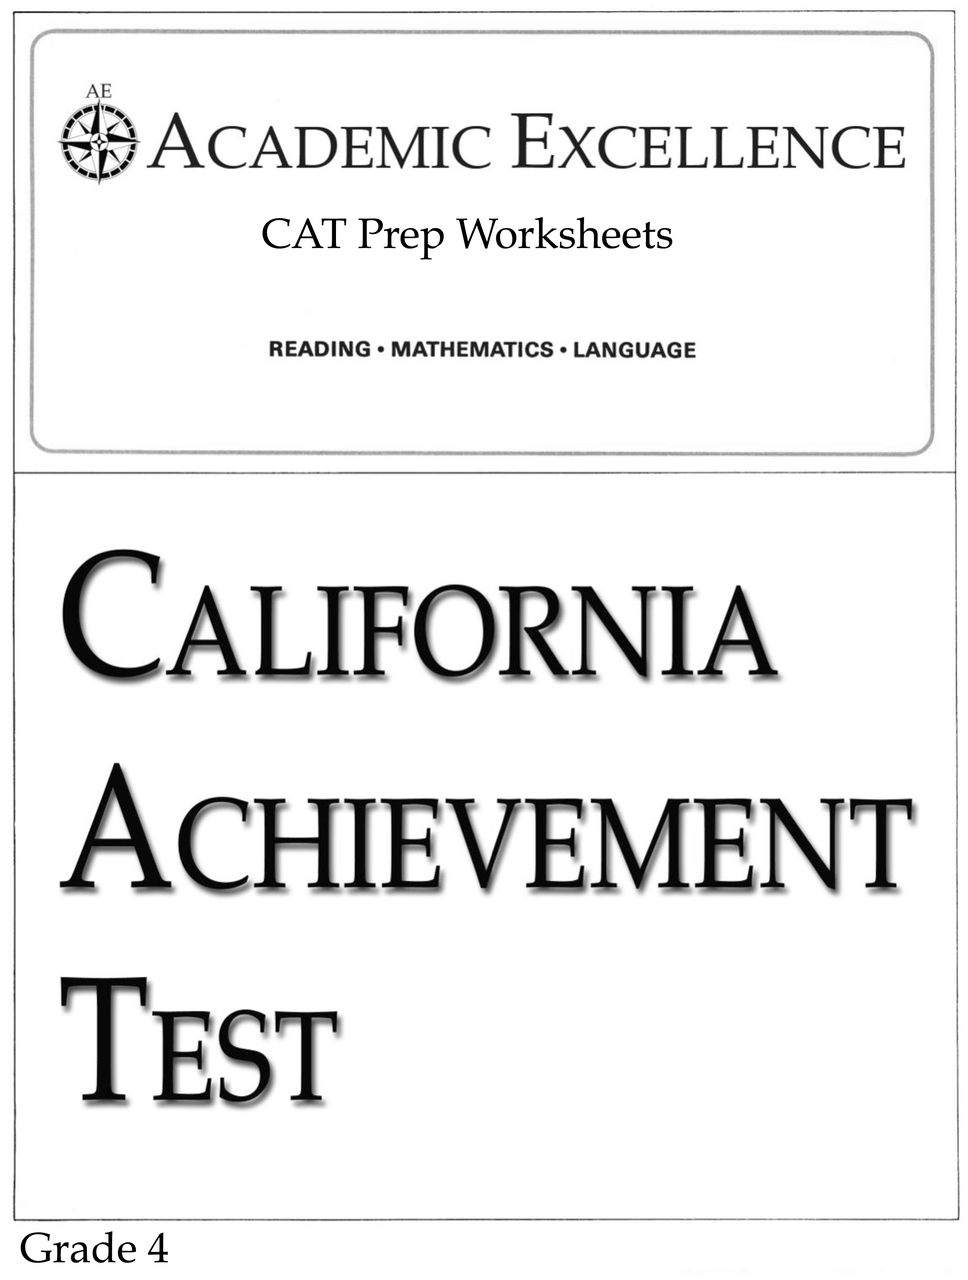 CAT Prep Pack: Grade 4 - PDF Download - Academic Excellence [ 1280 x 968 Pixel ]